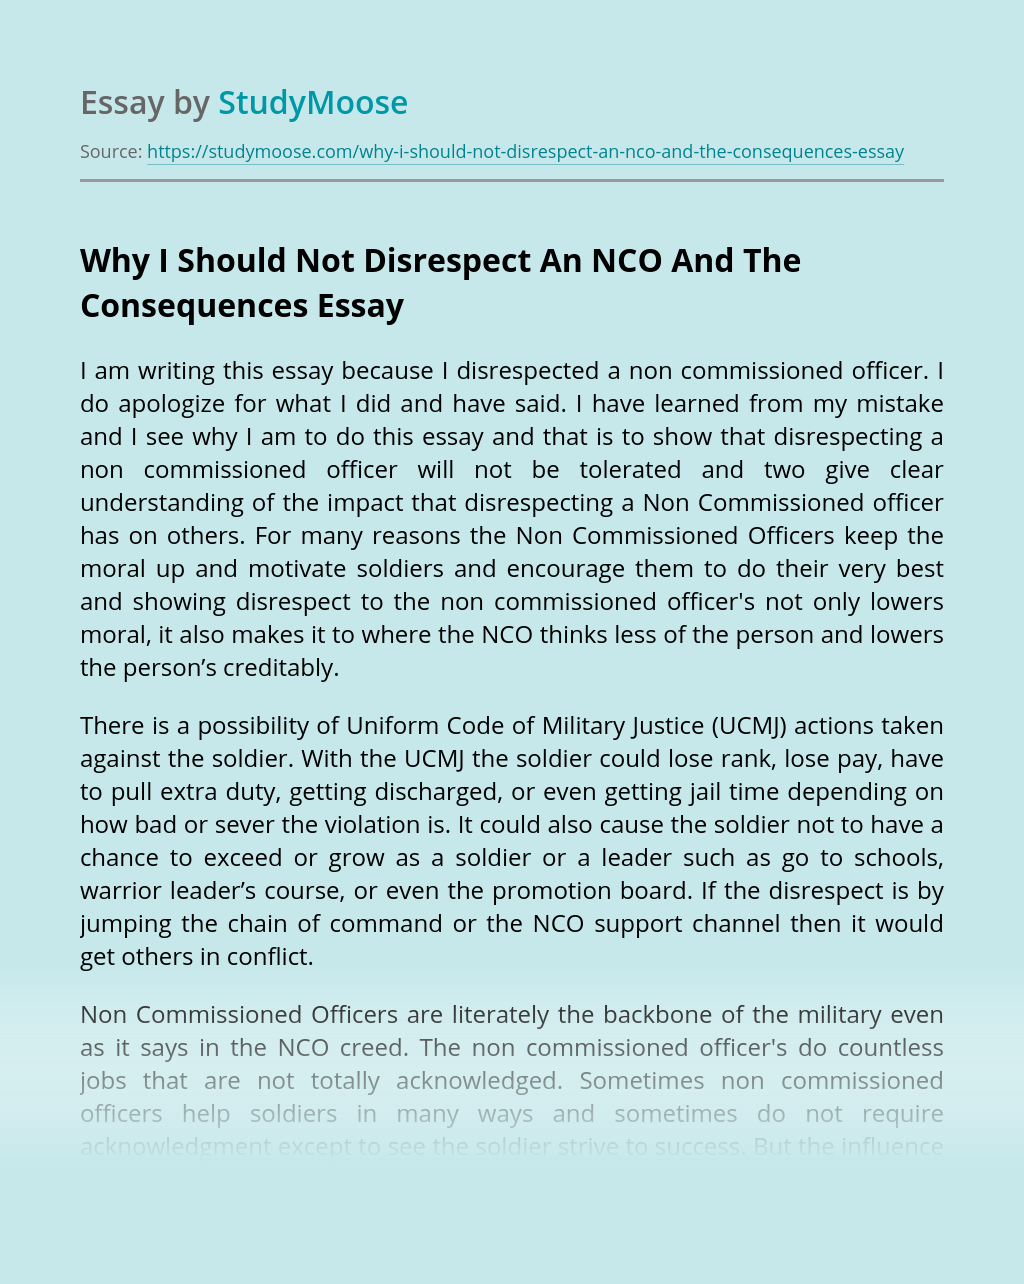 Why I Should Not Disrespect An NCO And The Consequences